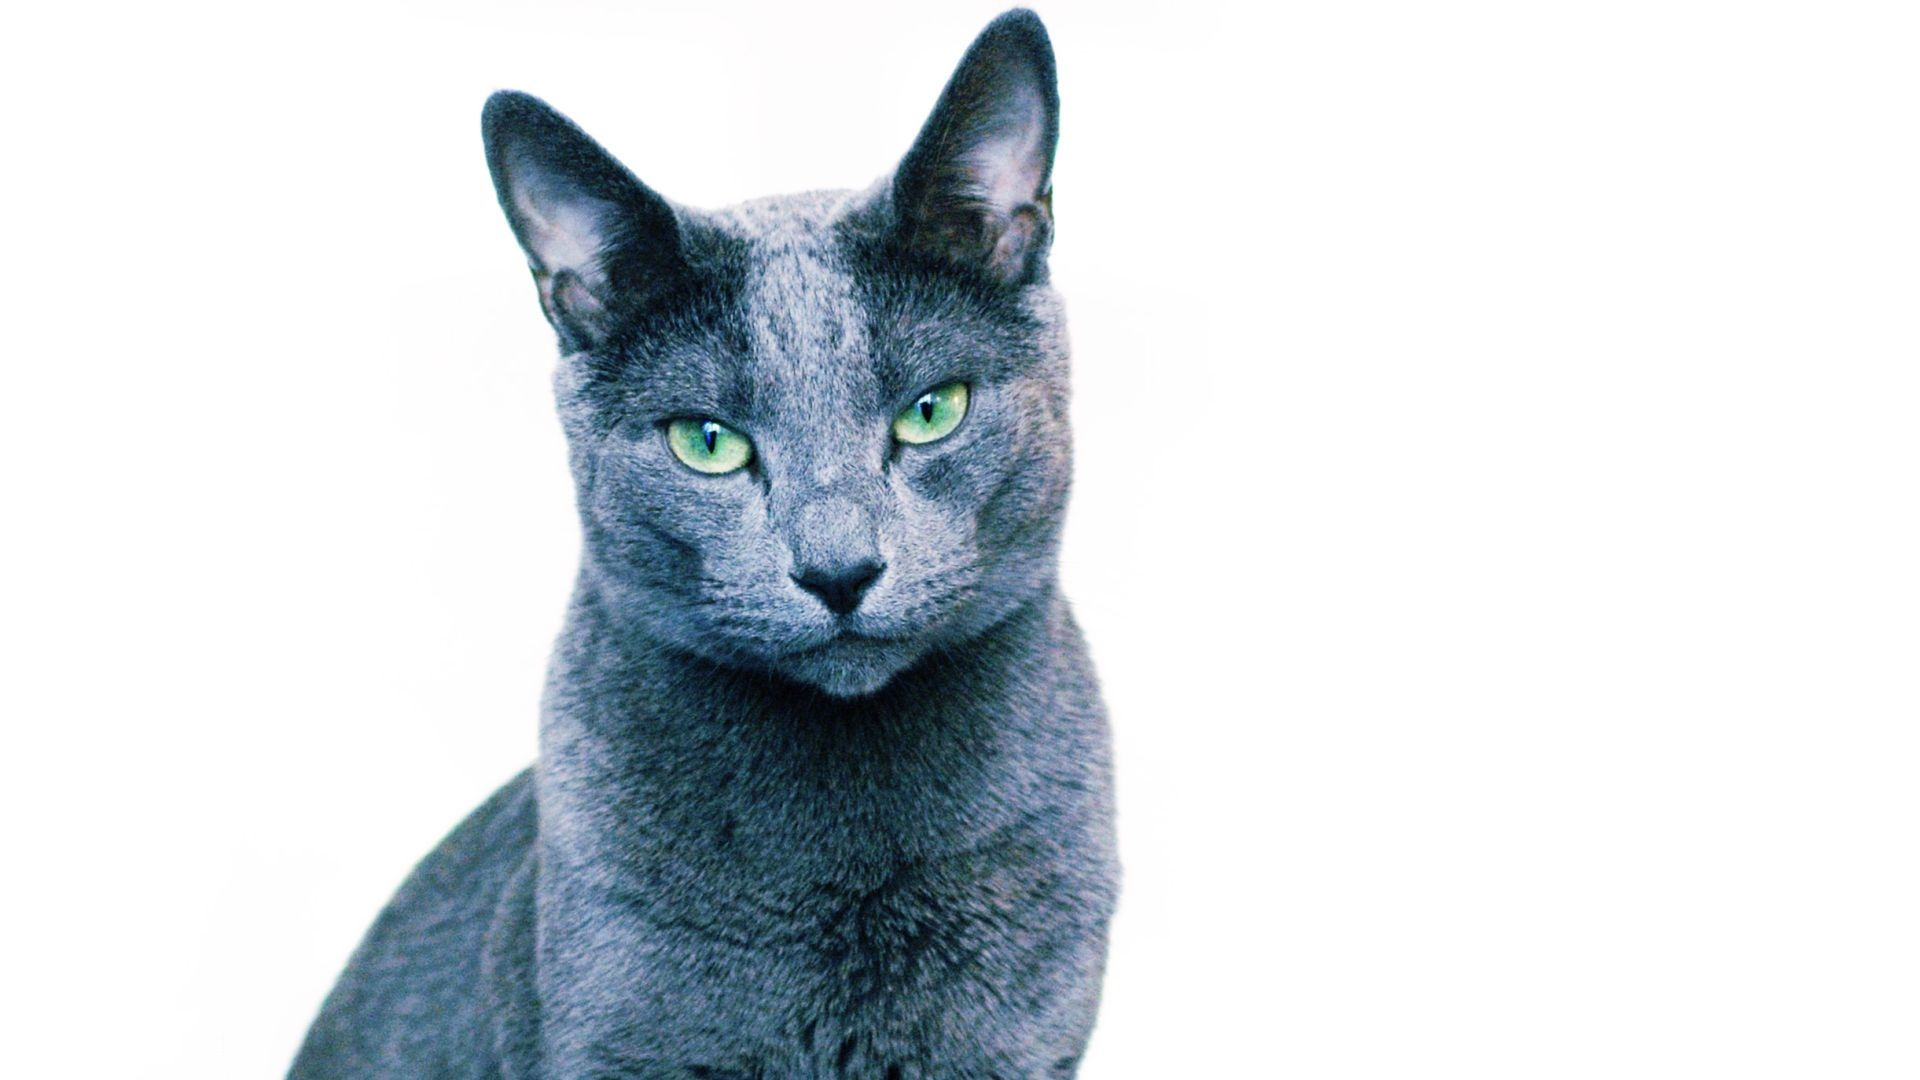 Russian Blue Cat Wallpapers - Top Free Russian Blue Cat